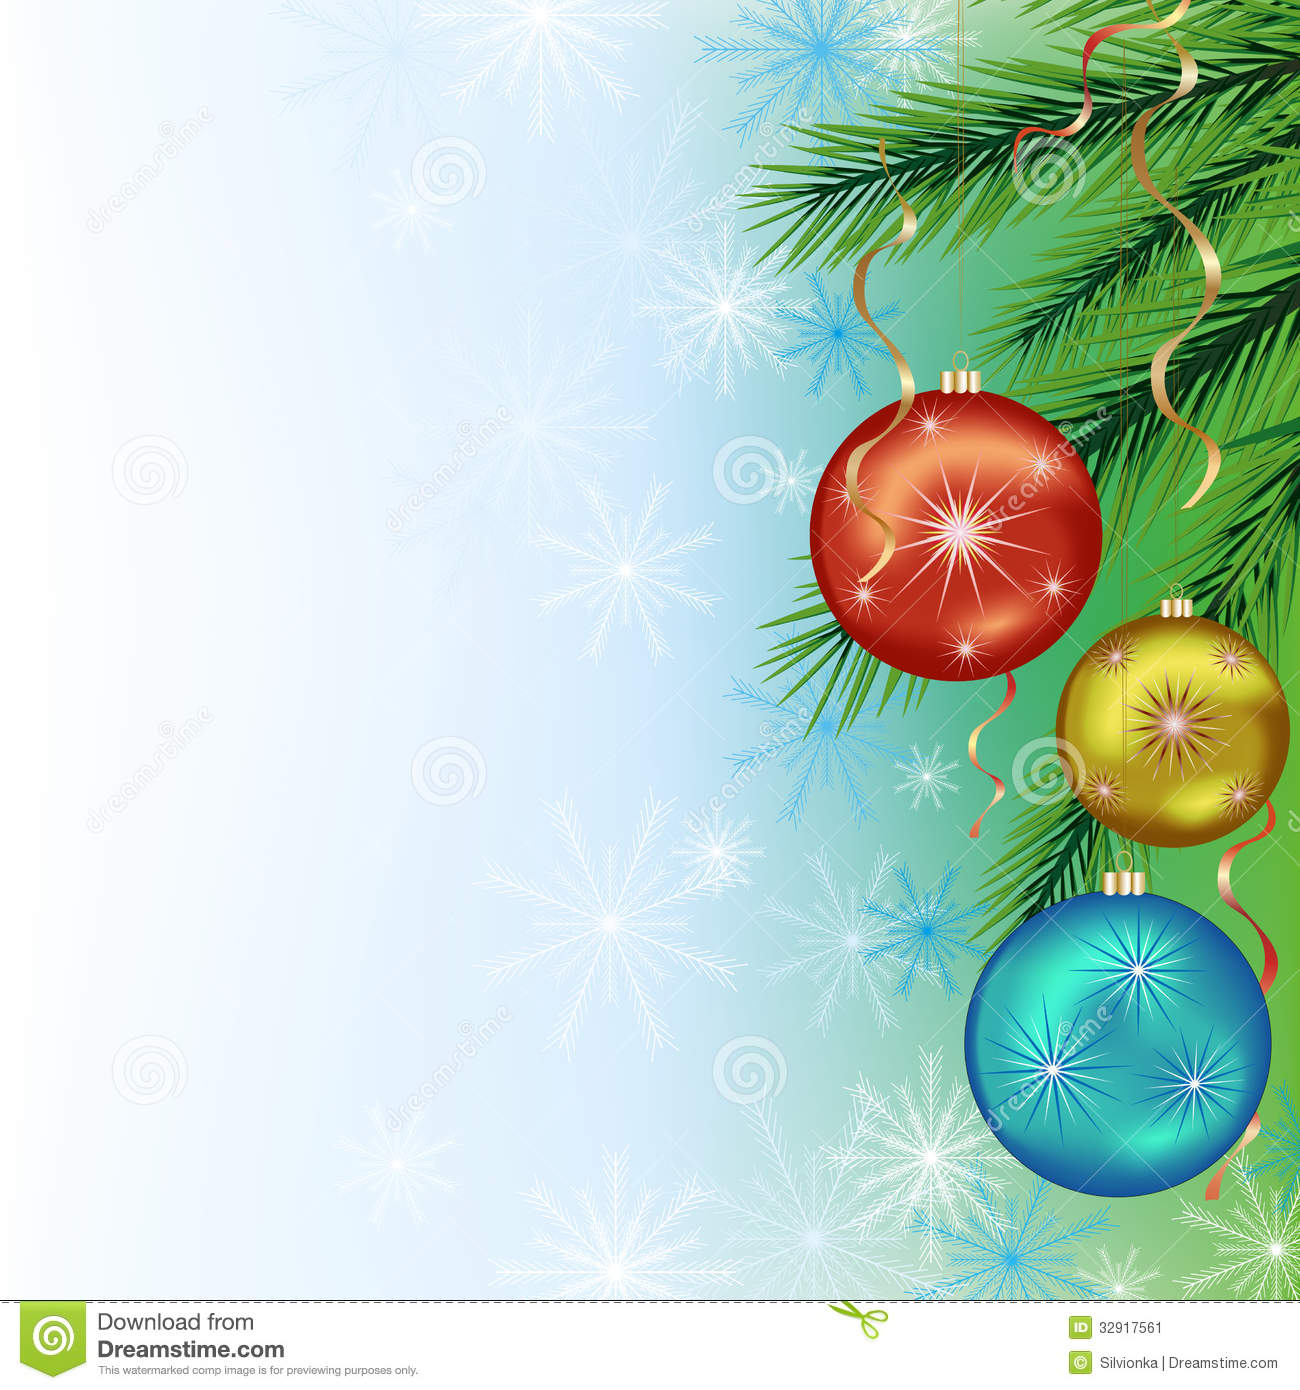 Festive background for new year and christmas stock vector for Background decoration images